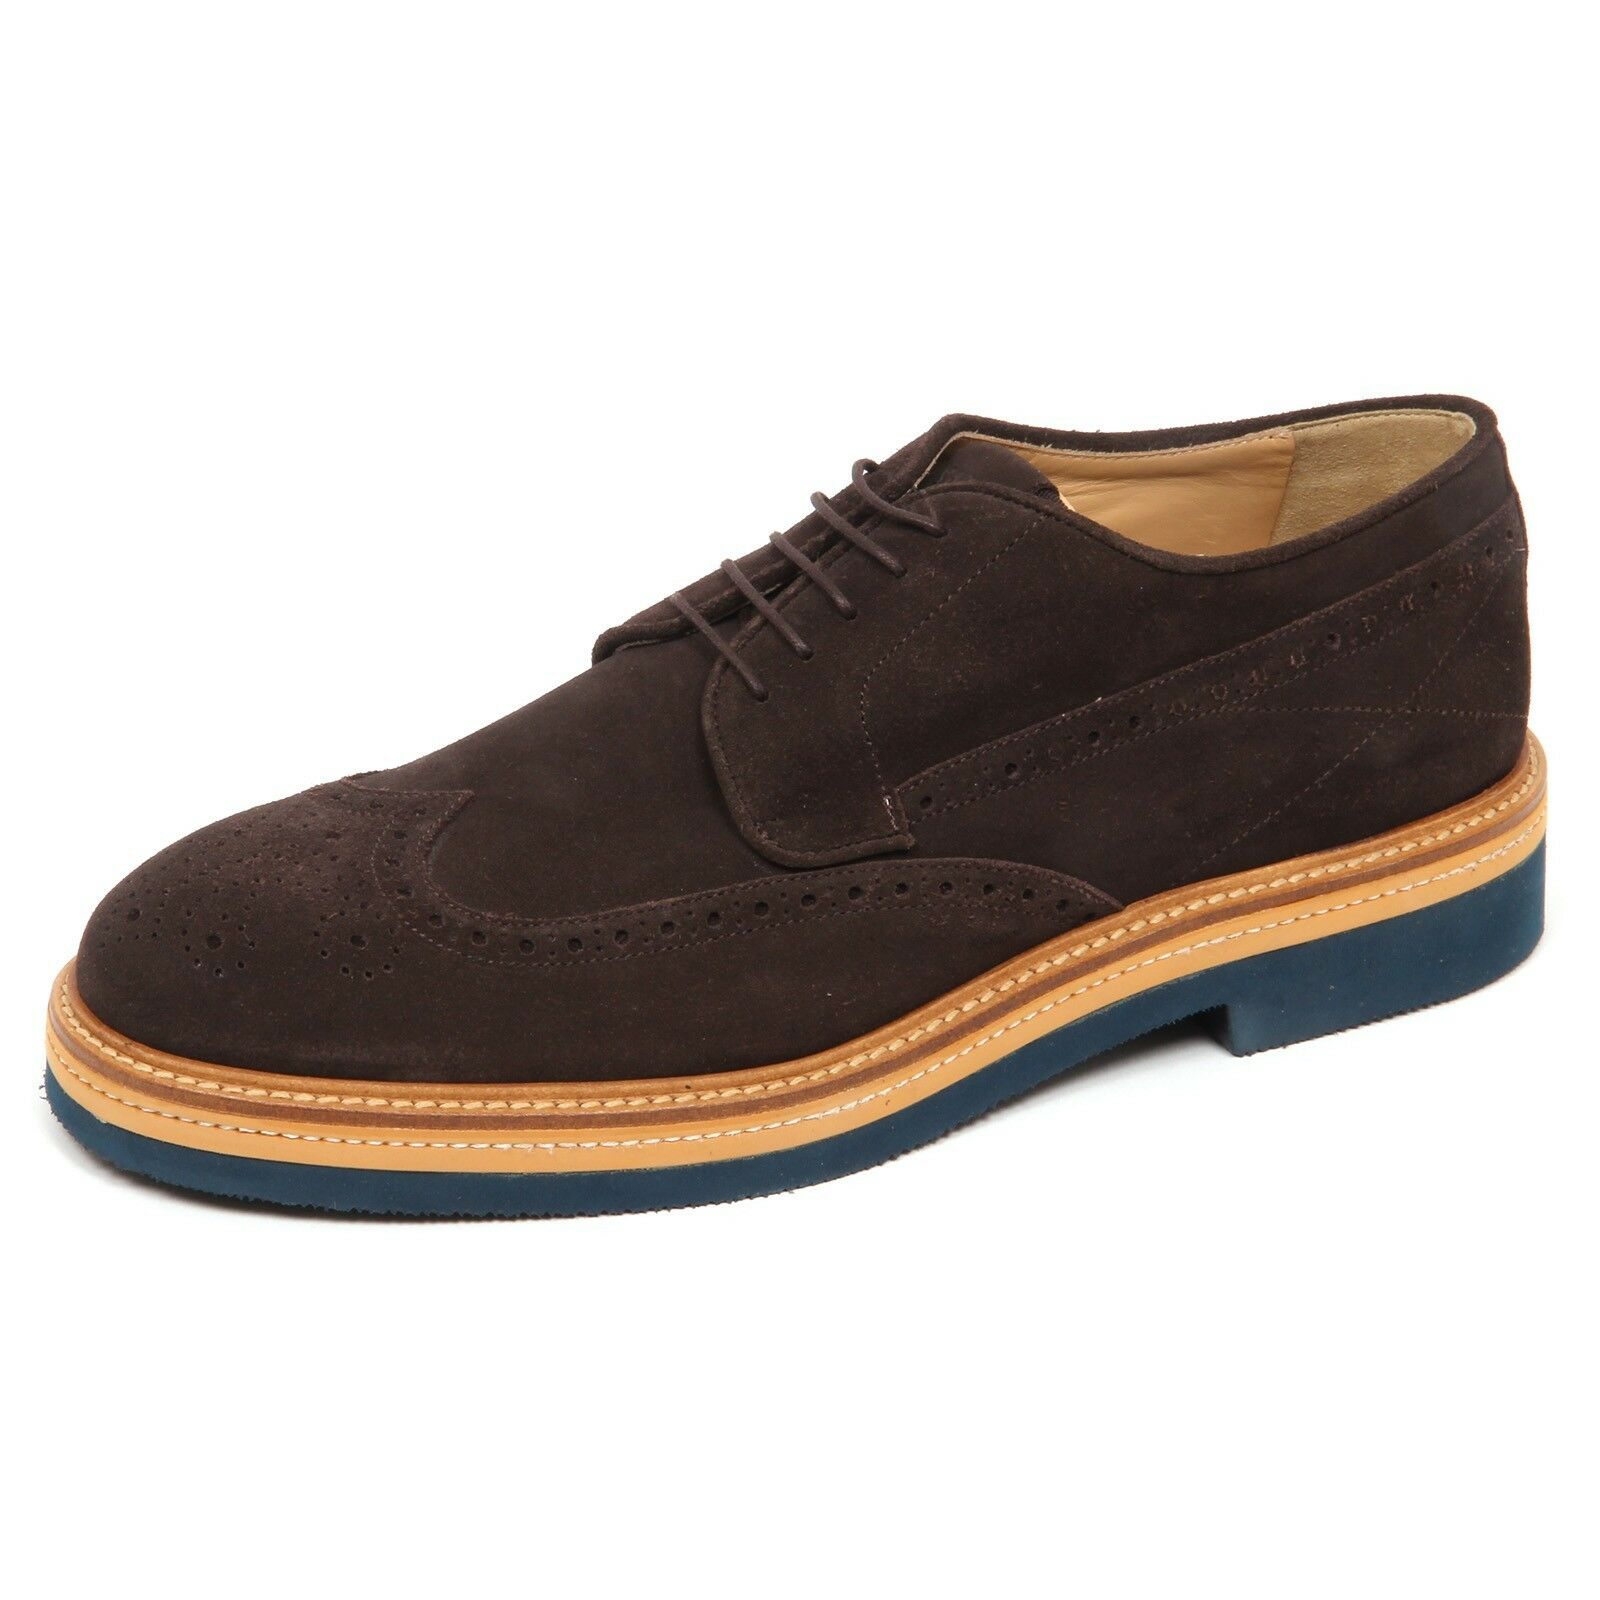 E4612 scarpa inglese suede uomo brown SAX scarpe suede inglese shoe man 237711